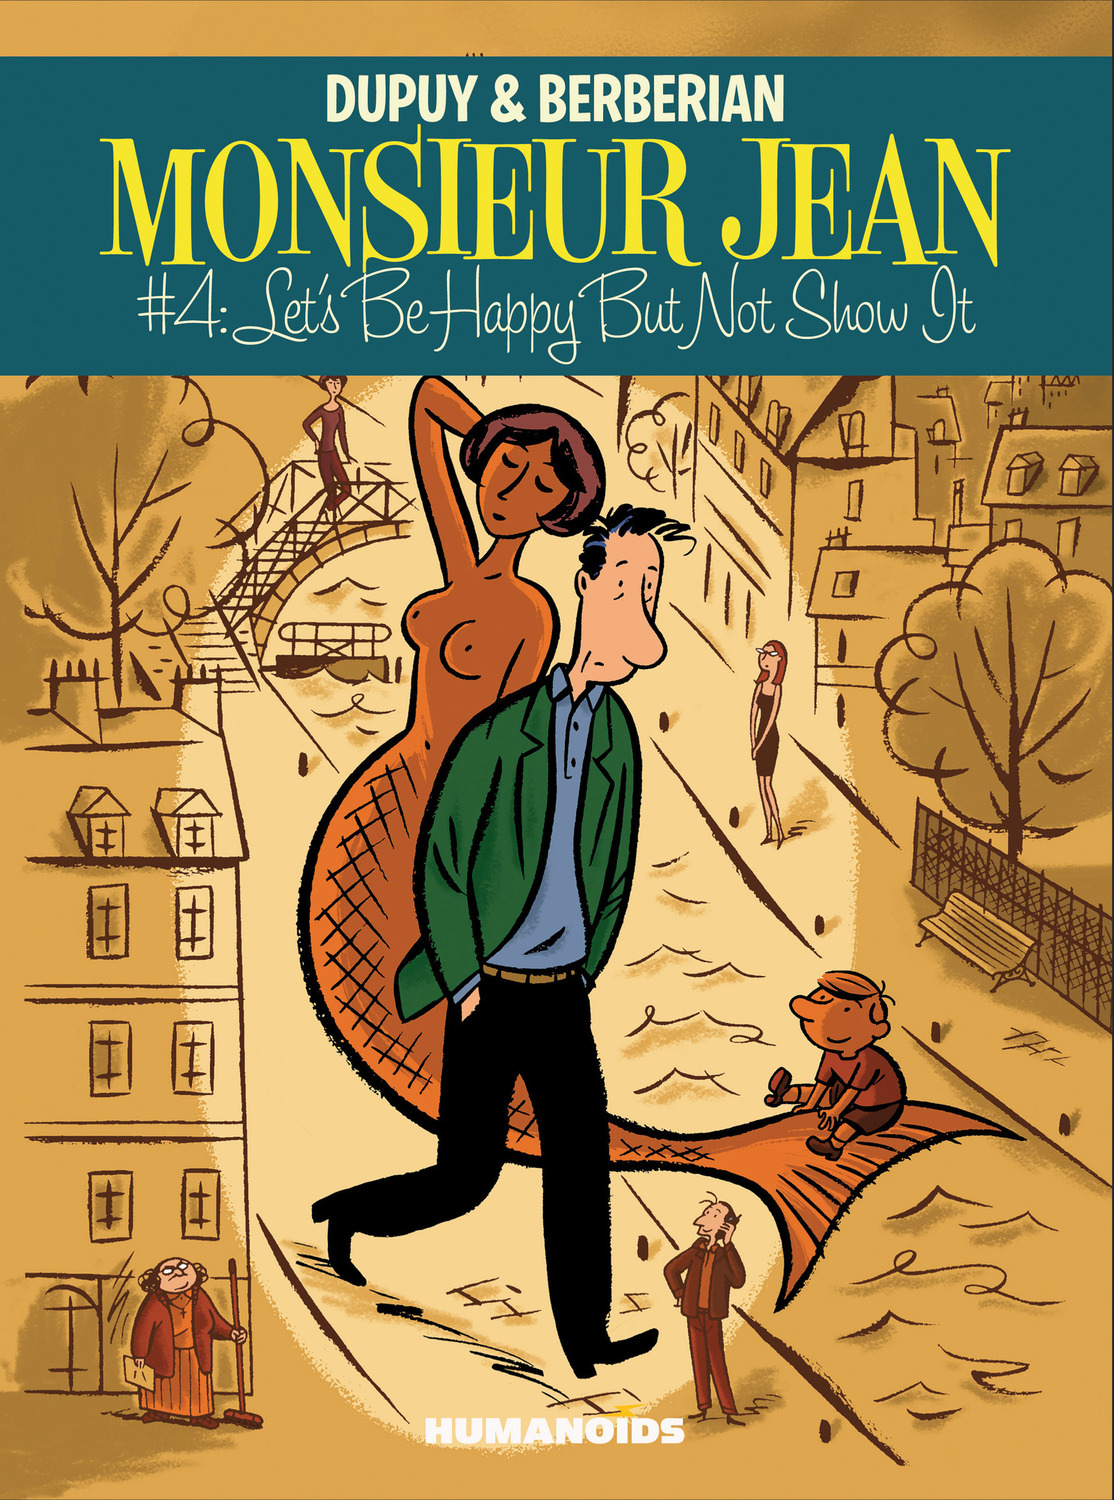 Monsieur Jean #4 : Let's Be Happy But Not Show it - Digital Comic